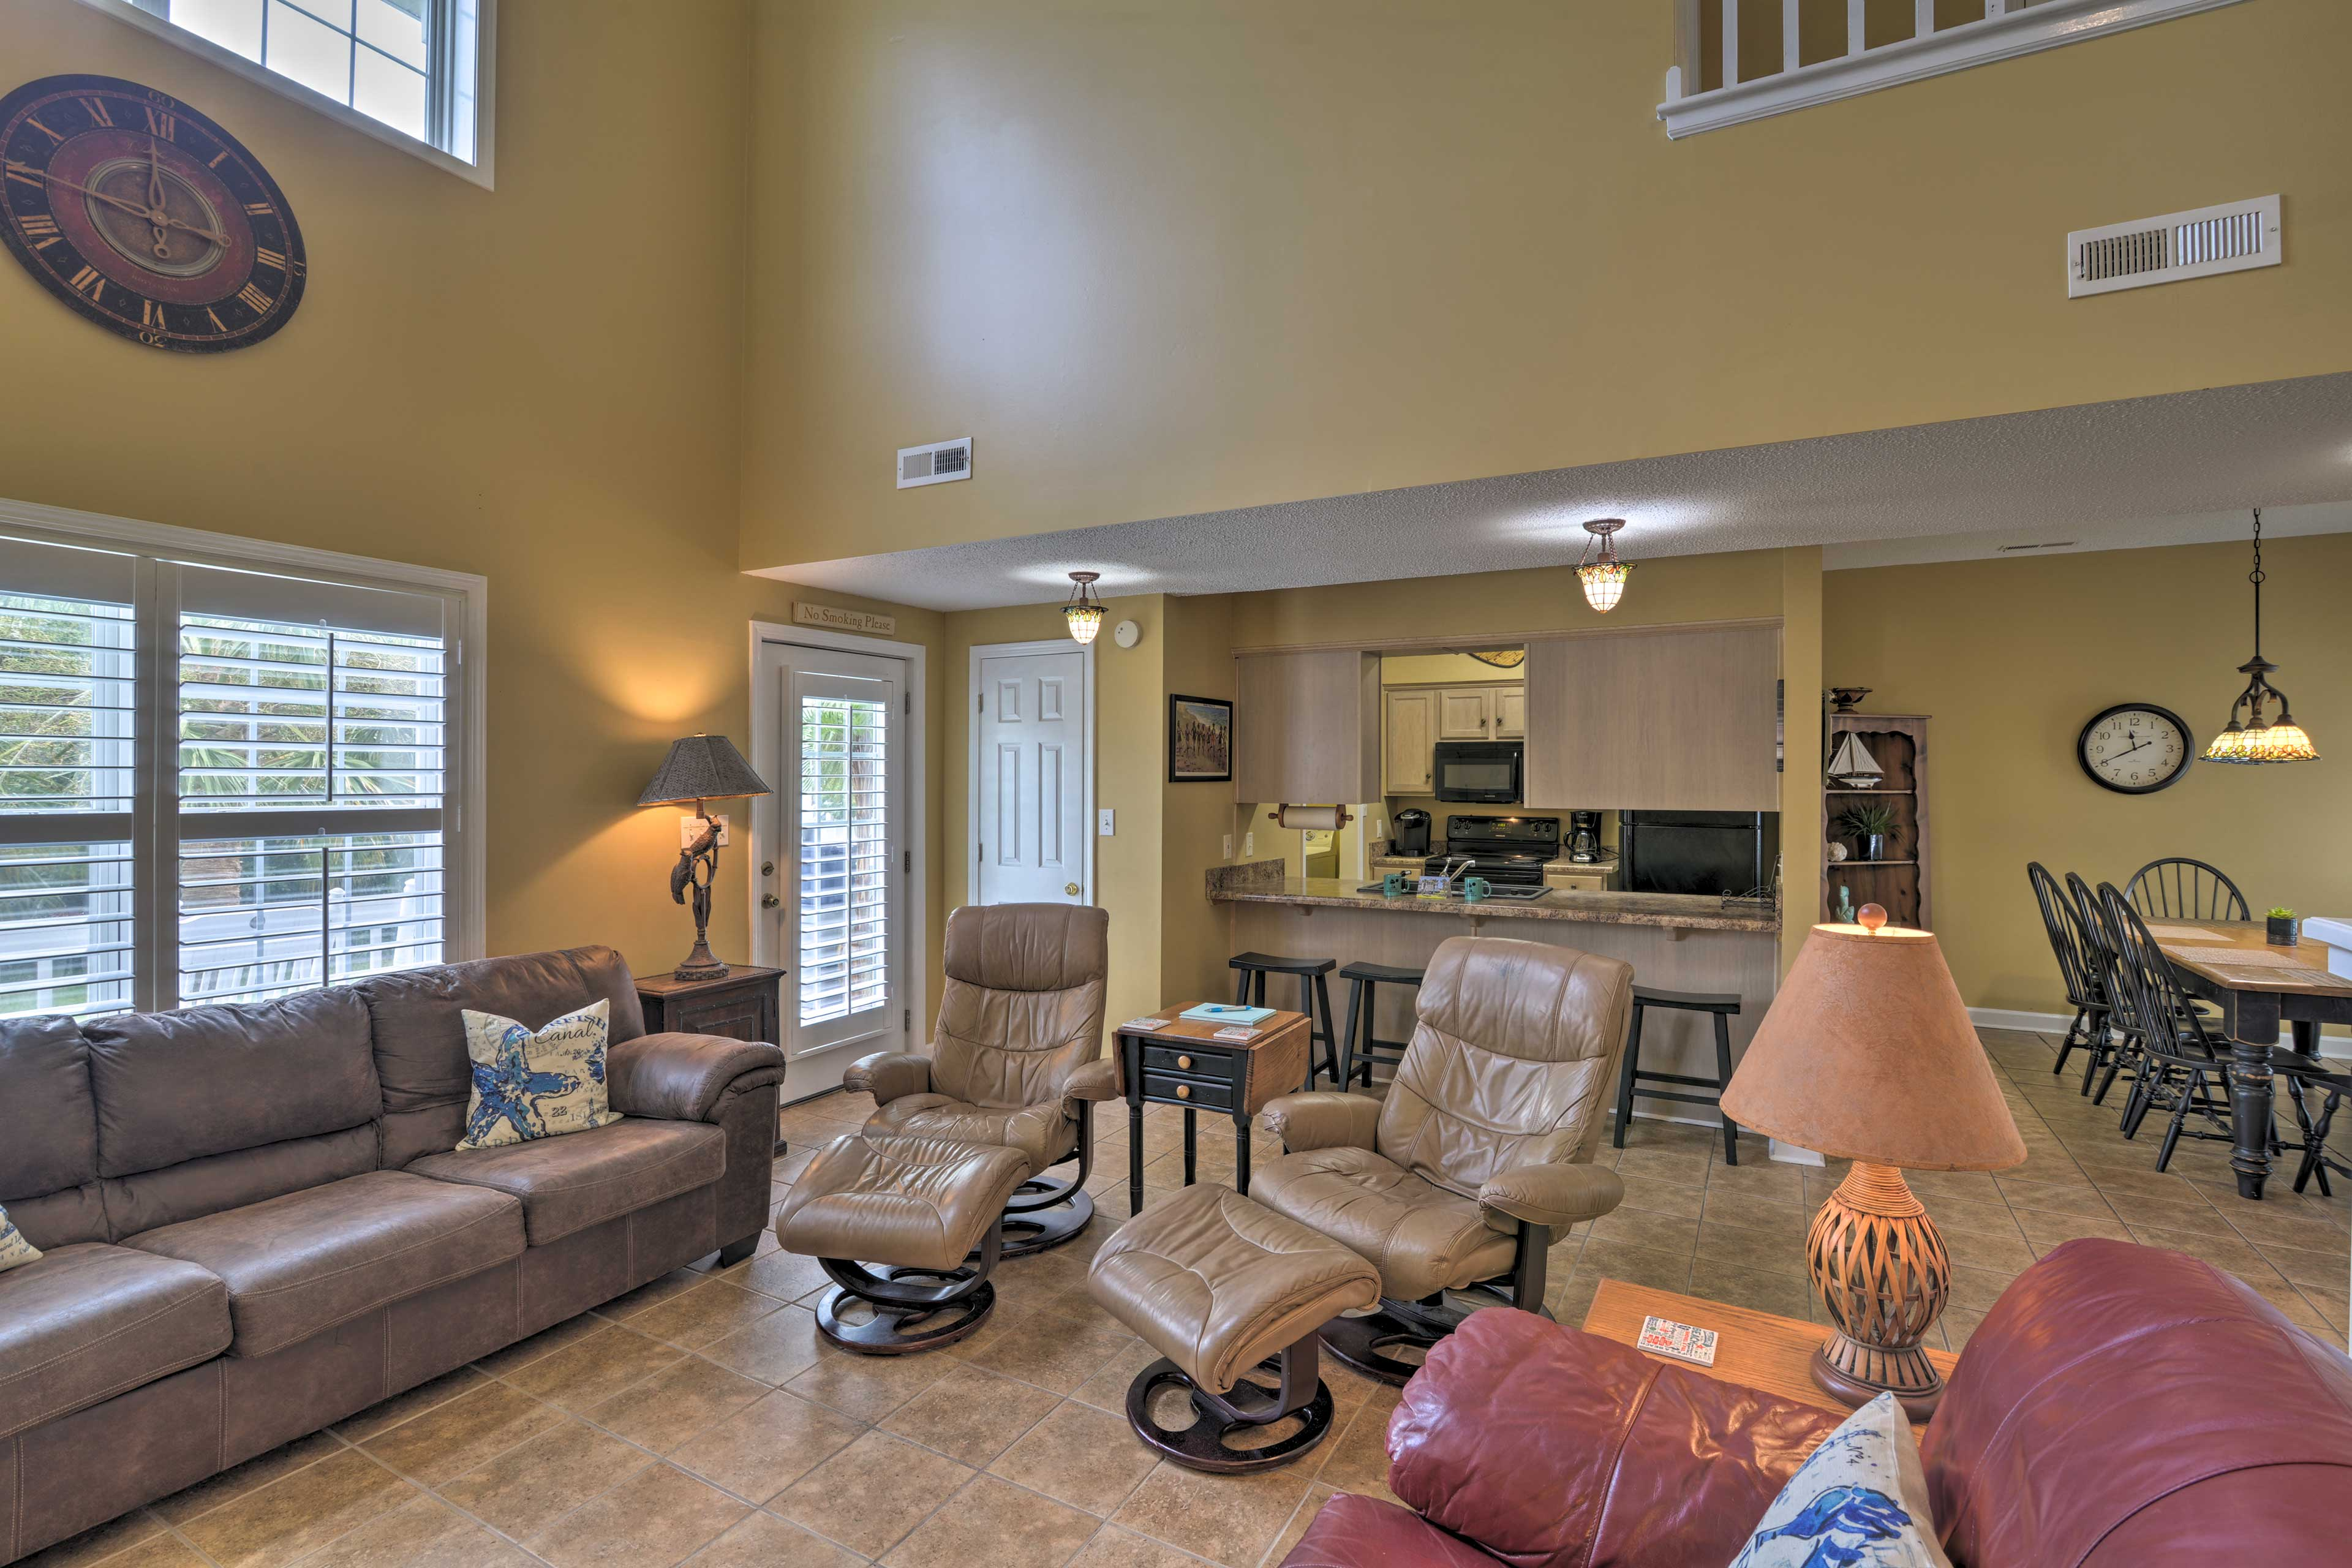 There's a seat for everyone in this spacious living area.